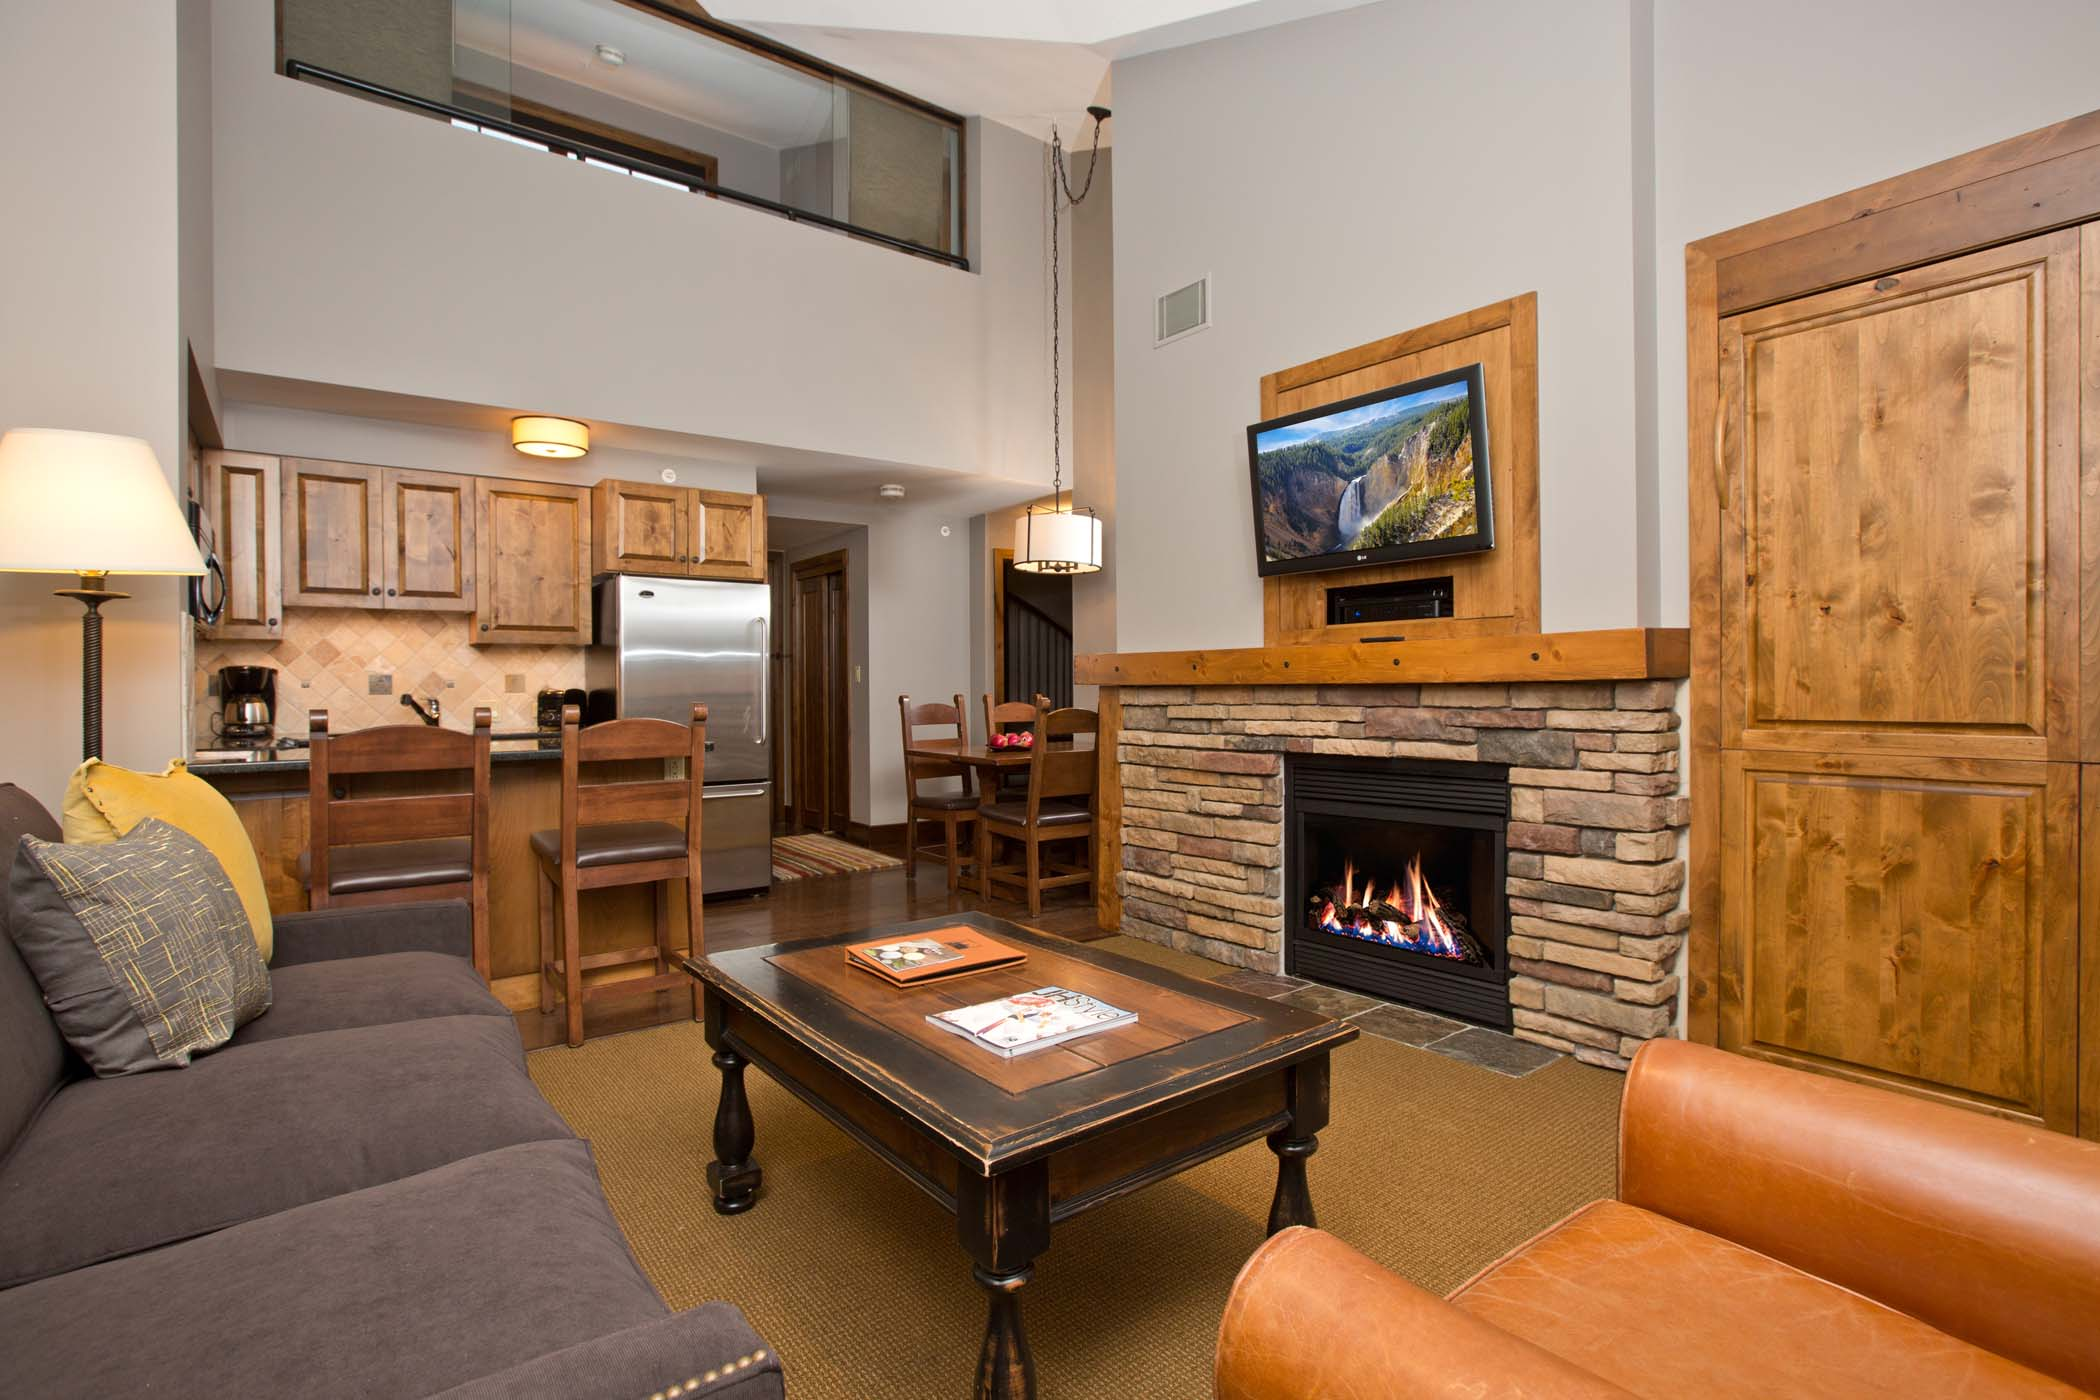 Condominium for Sale at Top Floor Mountain View at Teton Mountain Lodge 3385 W Village Dr. #506 Teton Village, Wyoming, 83025 Jackson Hole, United States